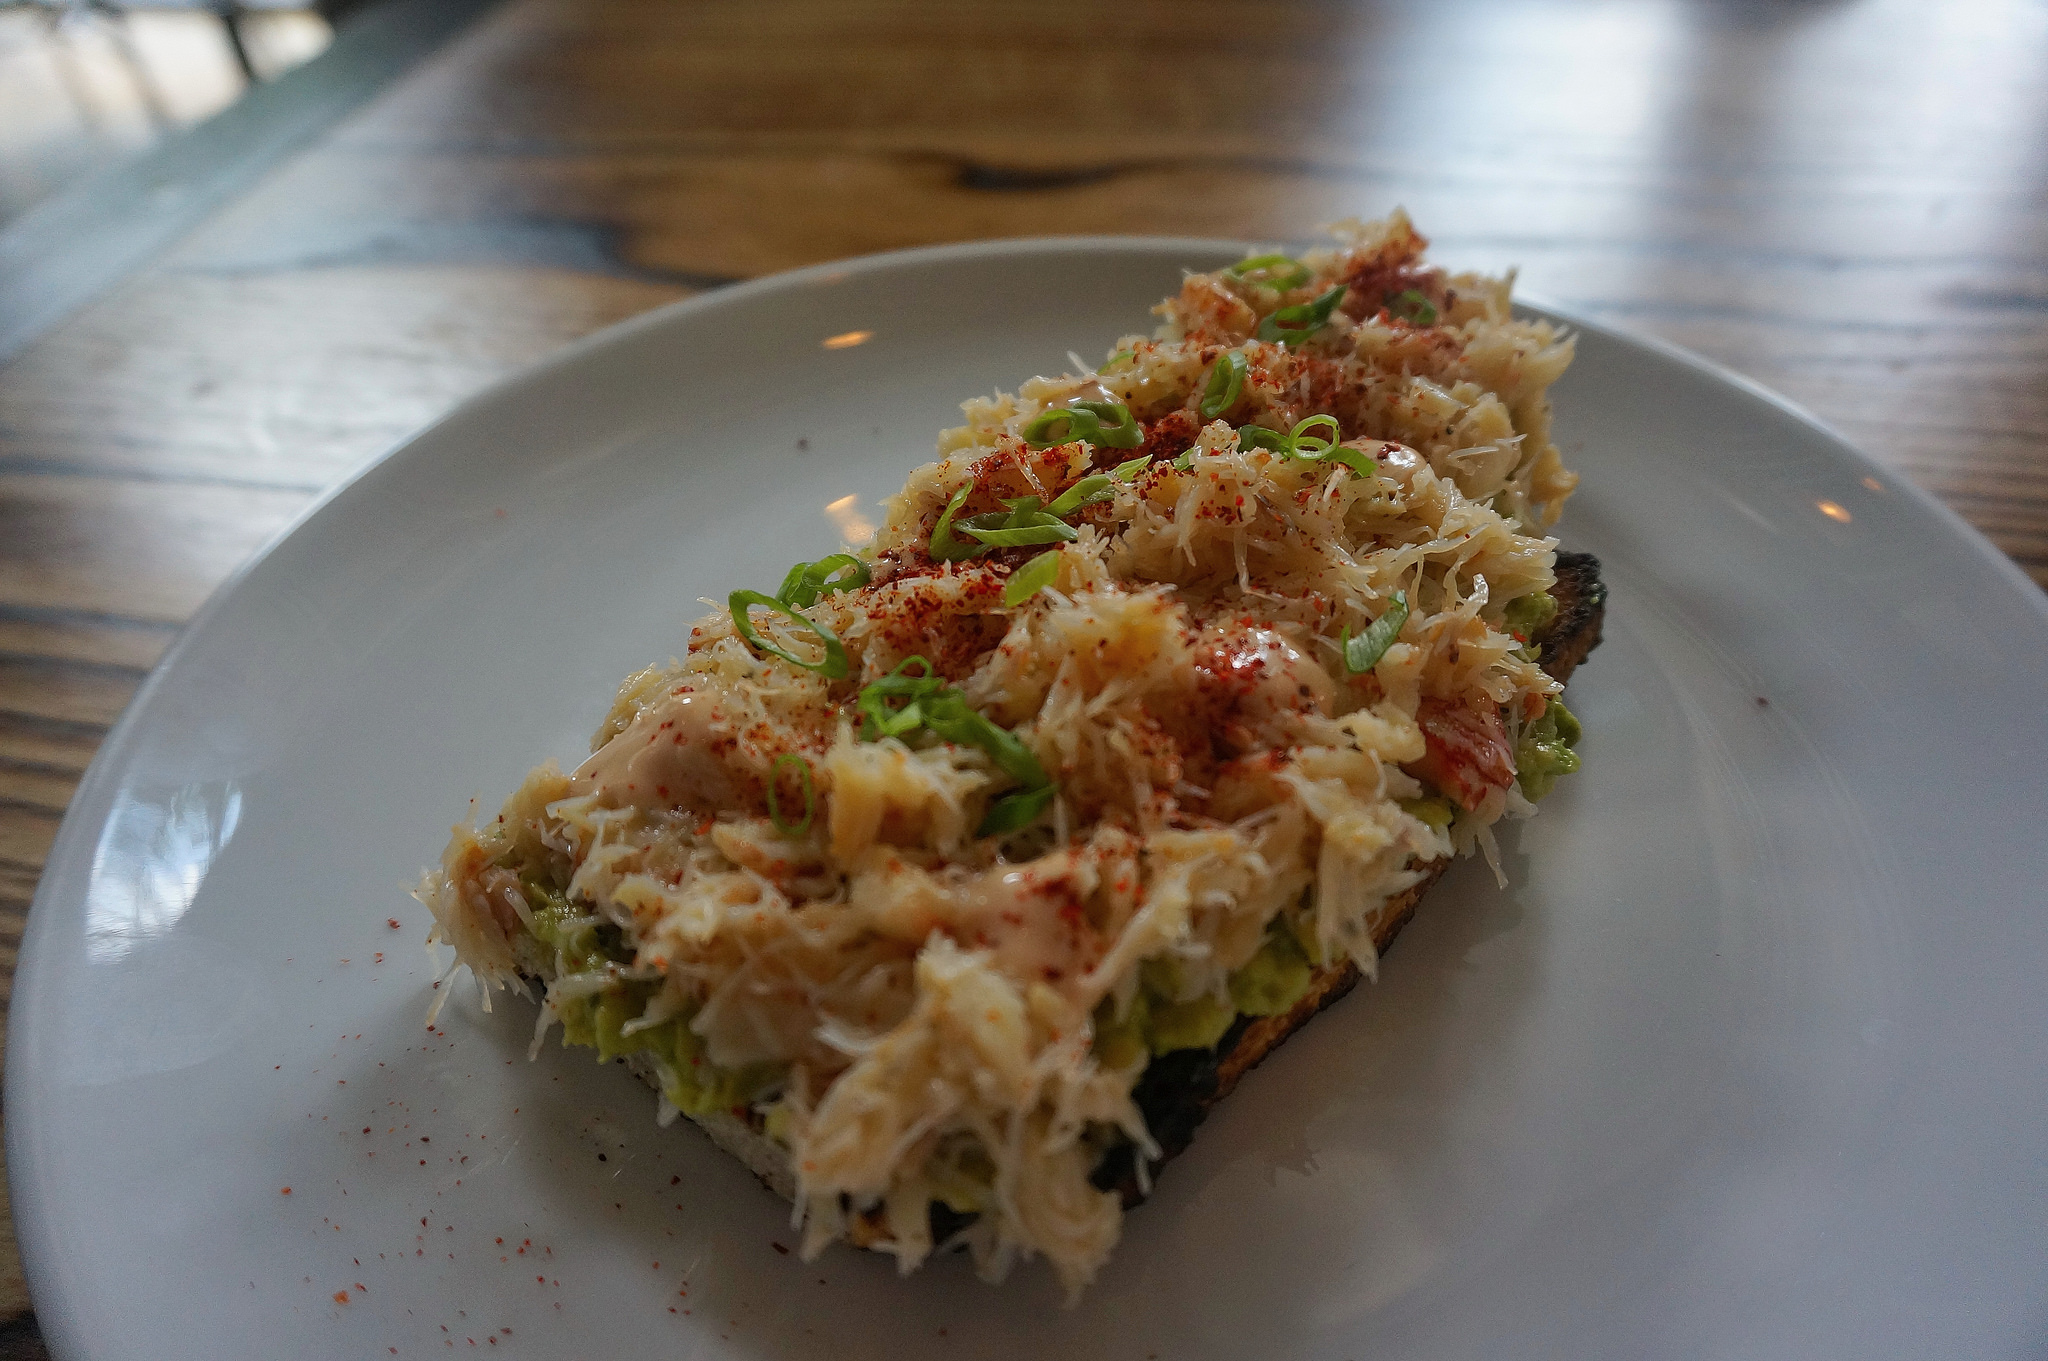 Rock crab on levain bread; I had to order another one of these on both visits!